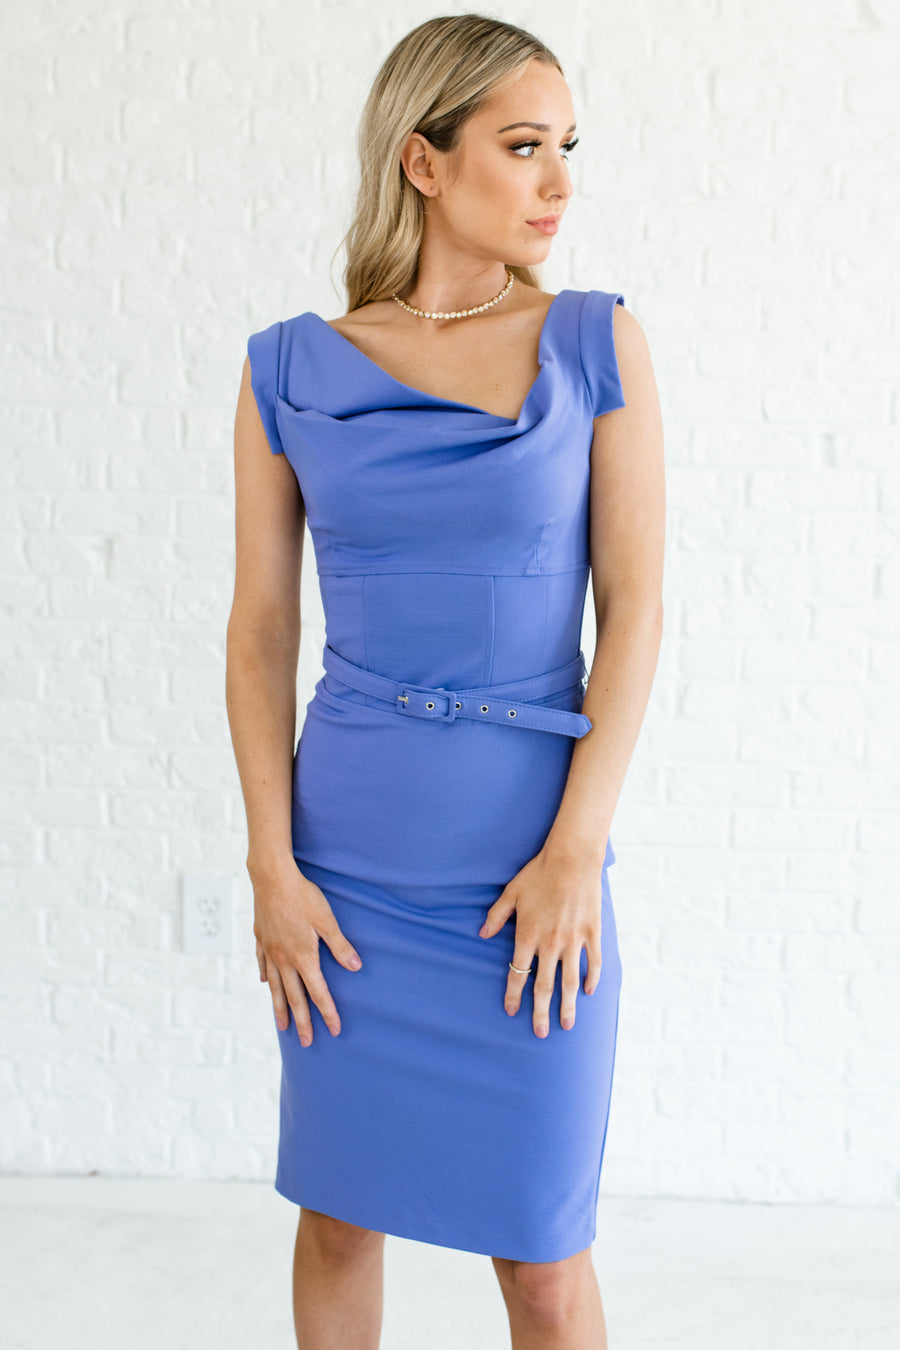 58c903005aca Breakfast at Tiffany s Blue Knee-Length Dress